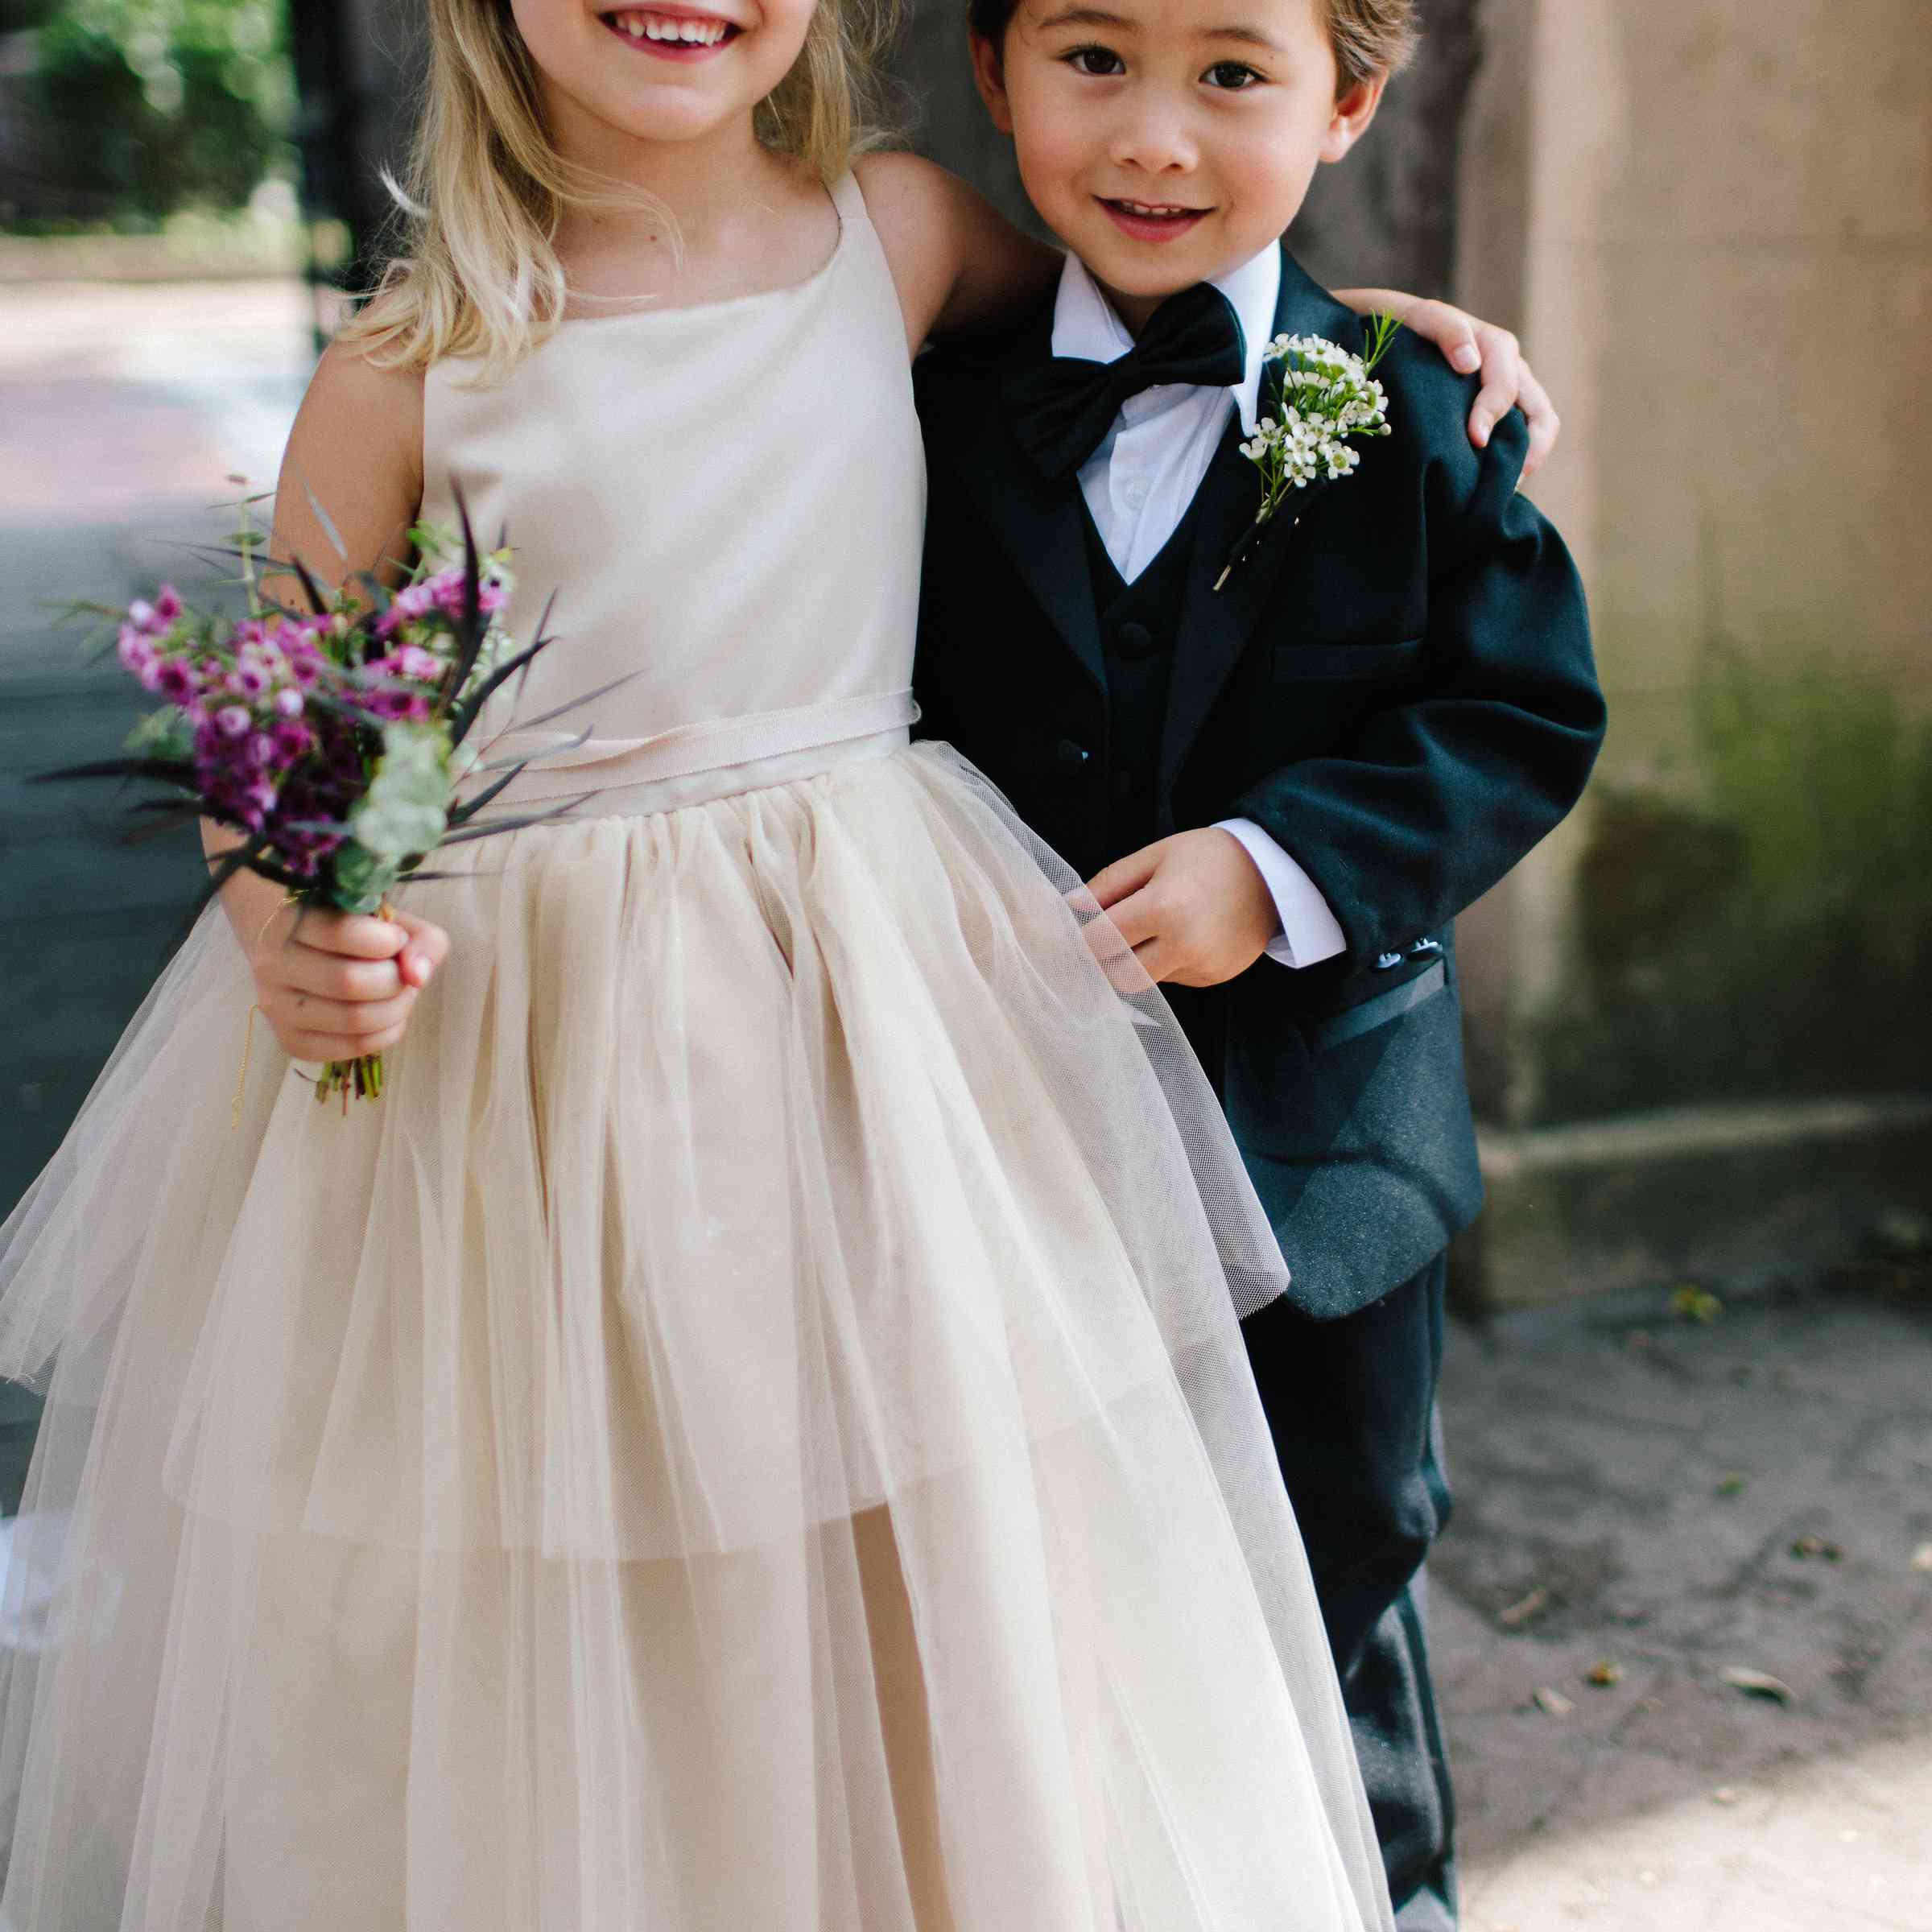 Flower Girl Bridesmaid Dresses: Get Inspired By These 35 Adorable Flower Girls